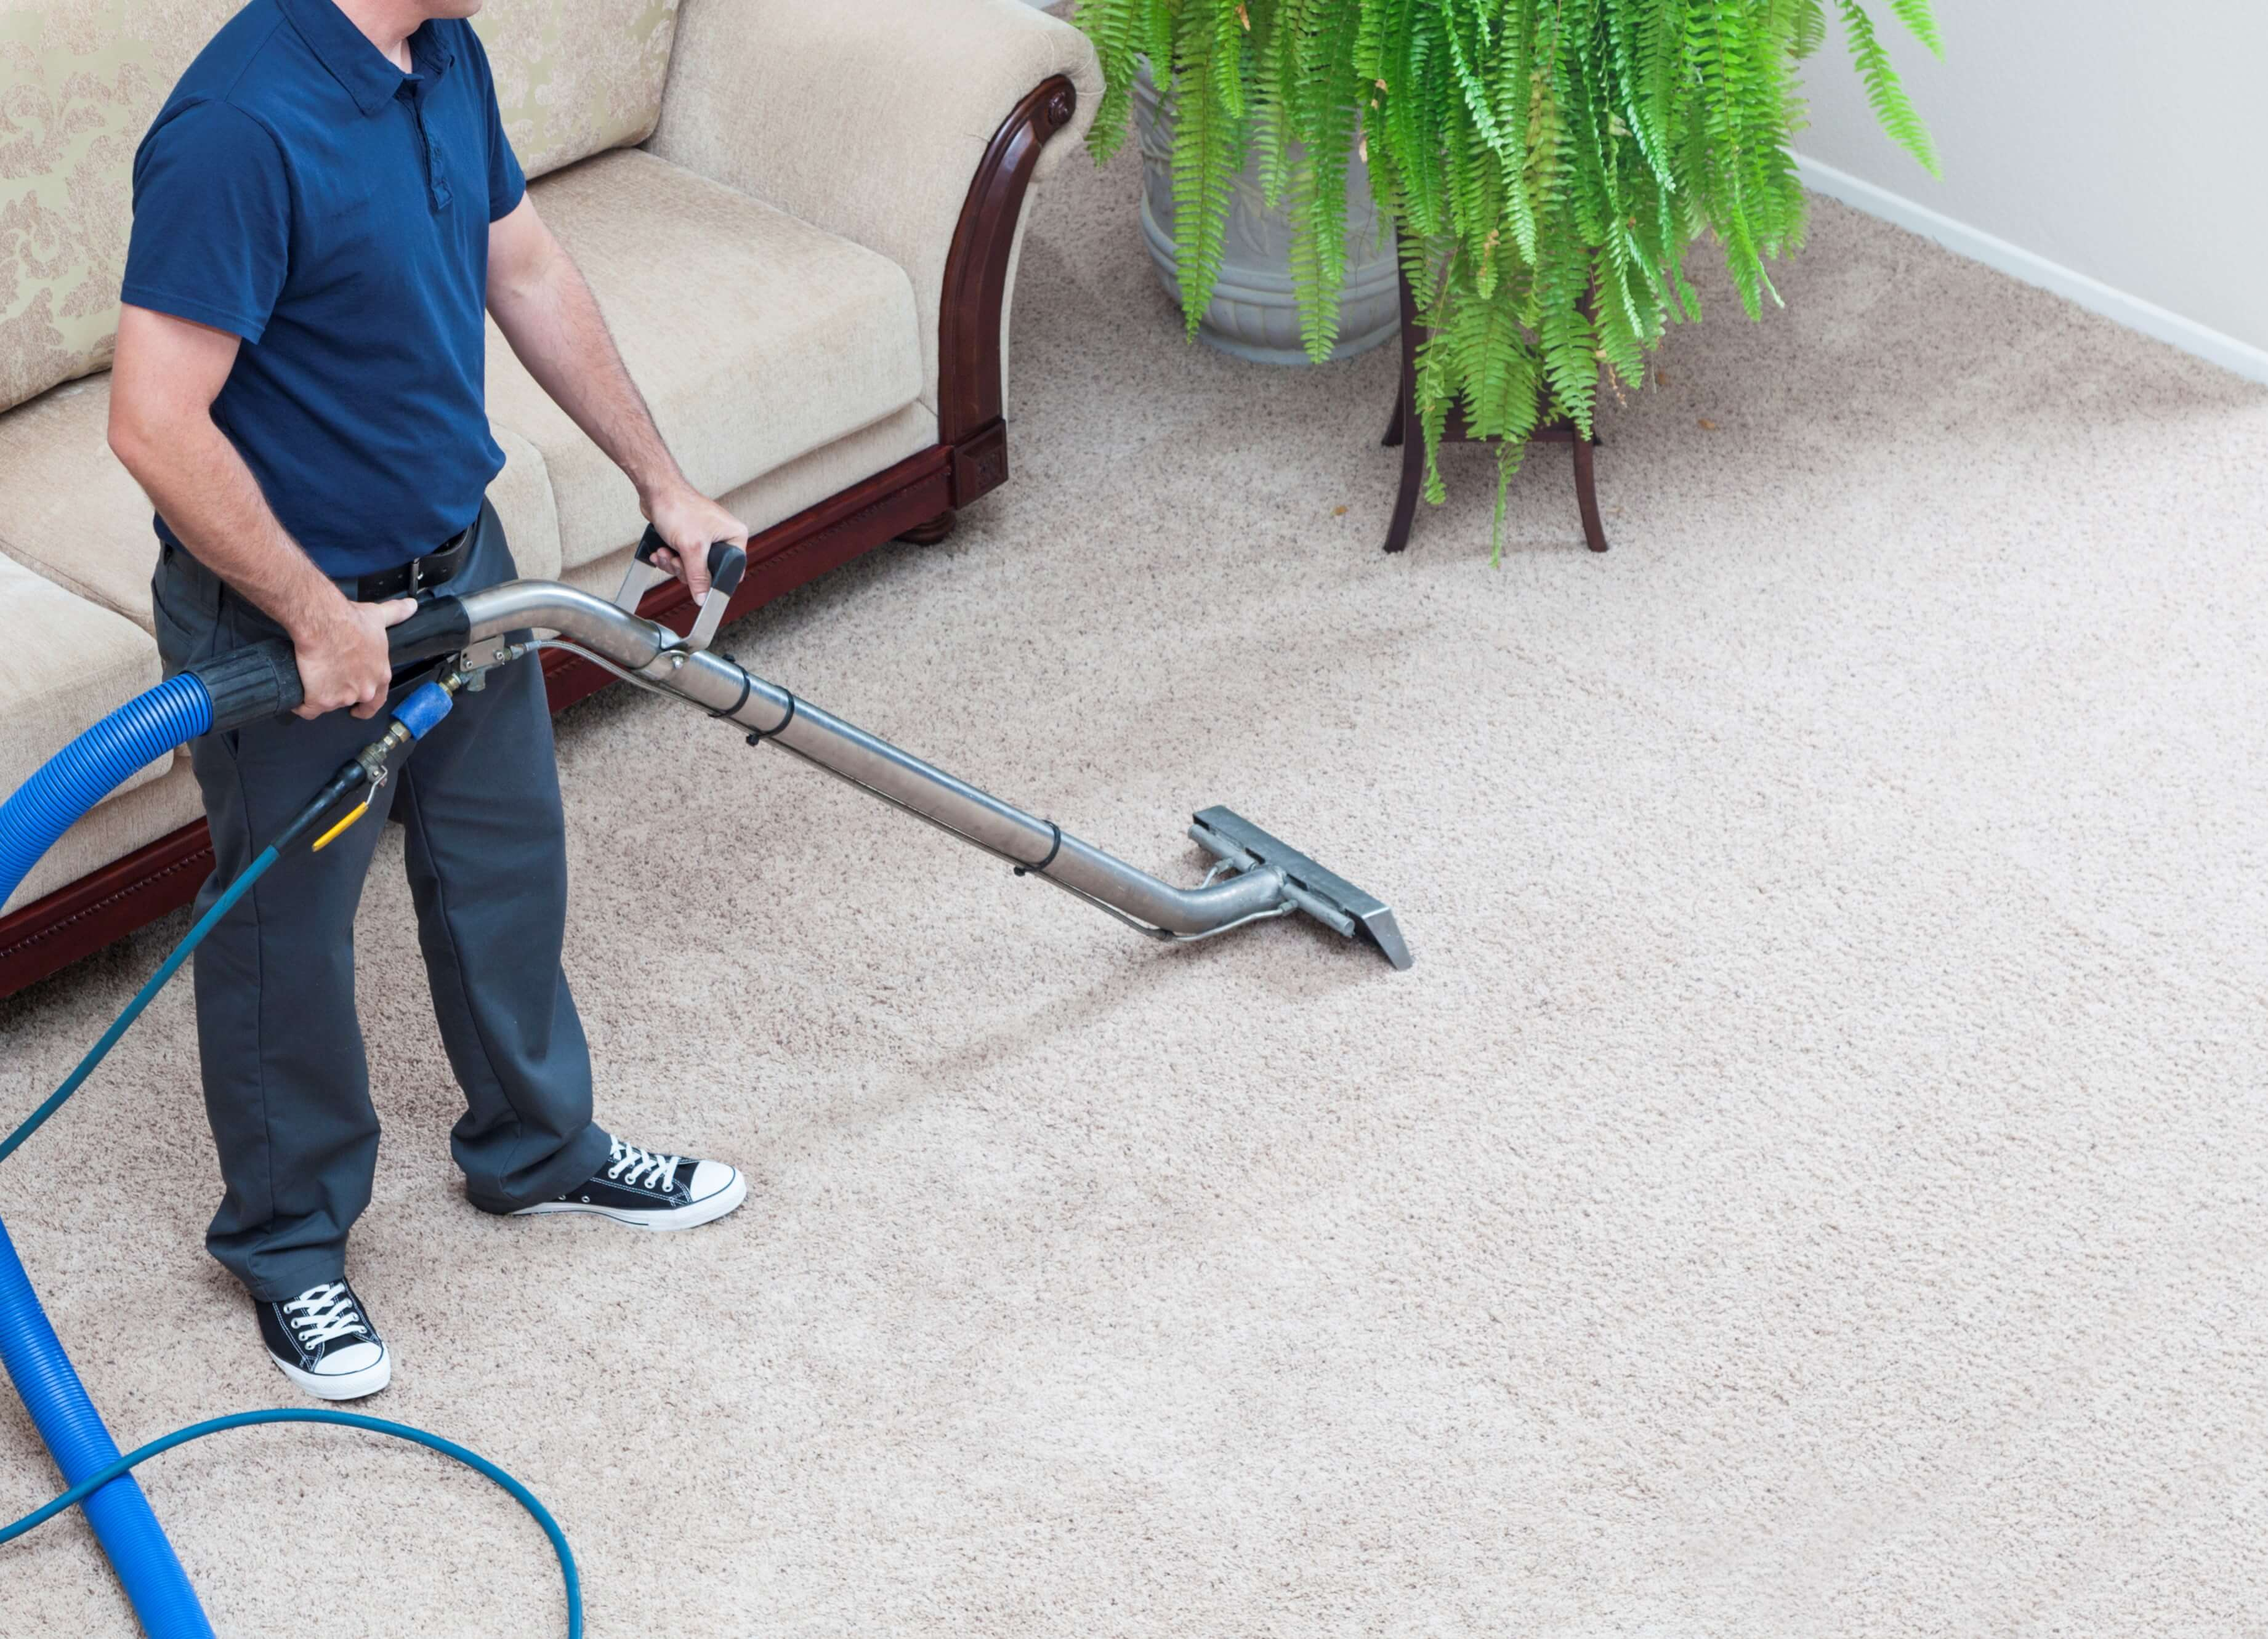 Carpet Cleaning True Carpet Cleaning The Woodlands Tx North Houston Tx